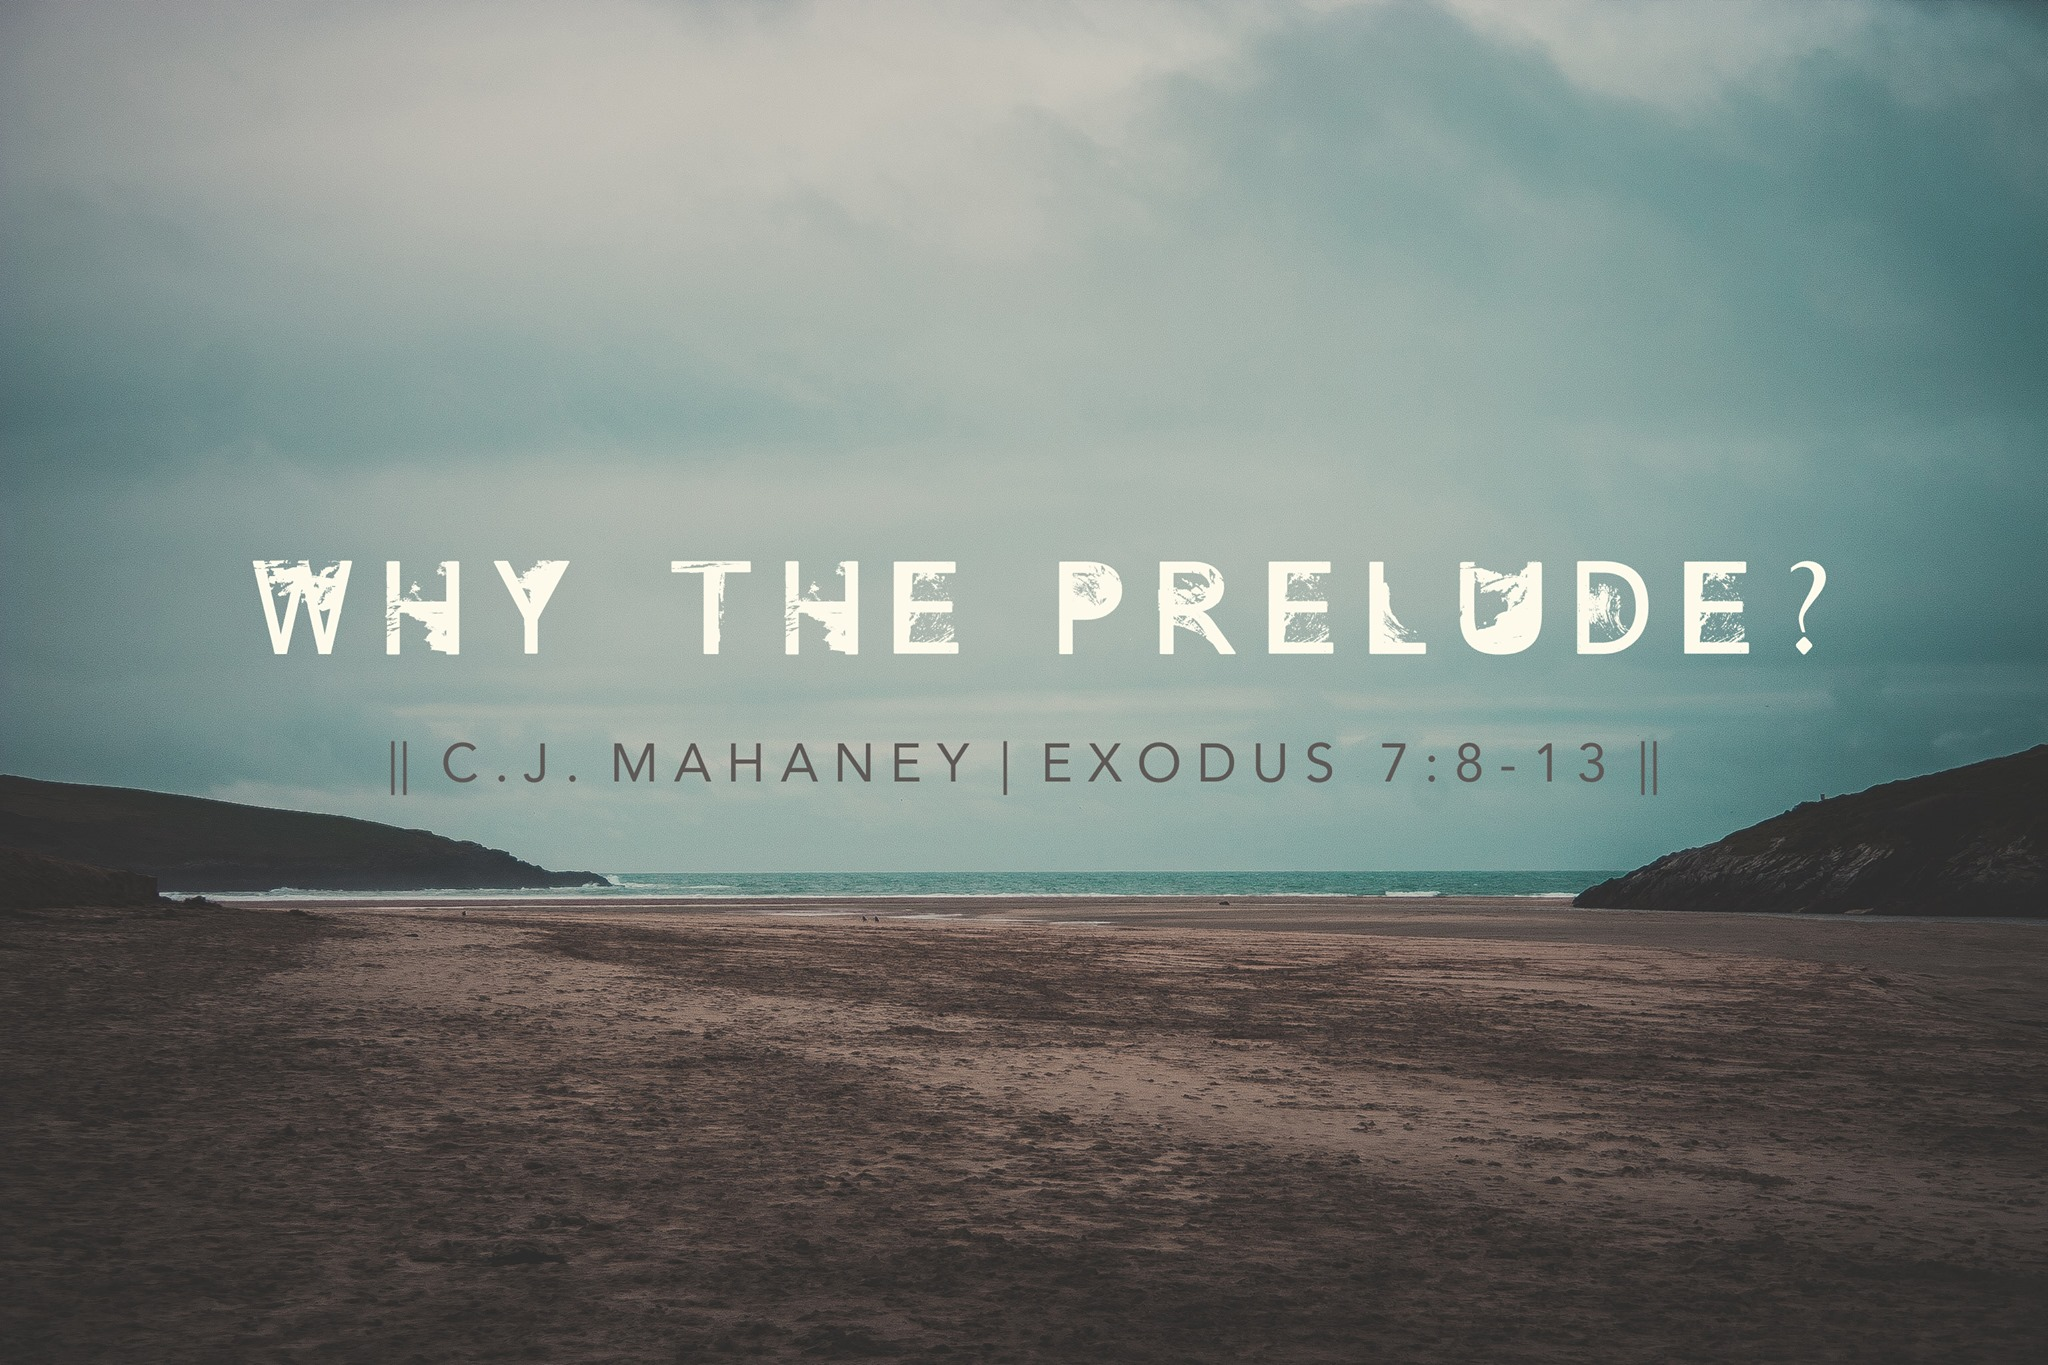 Why the Prelude